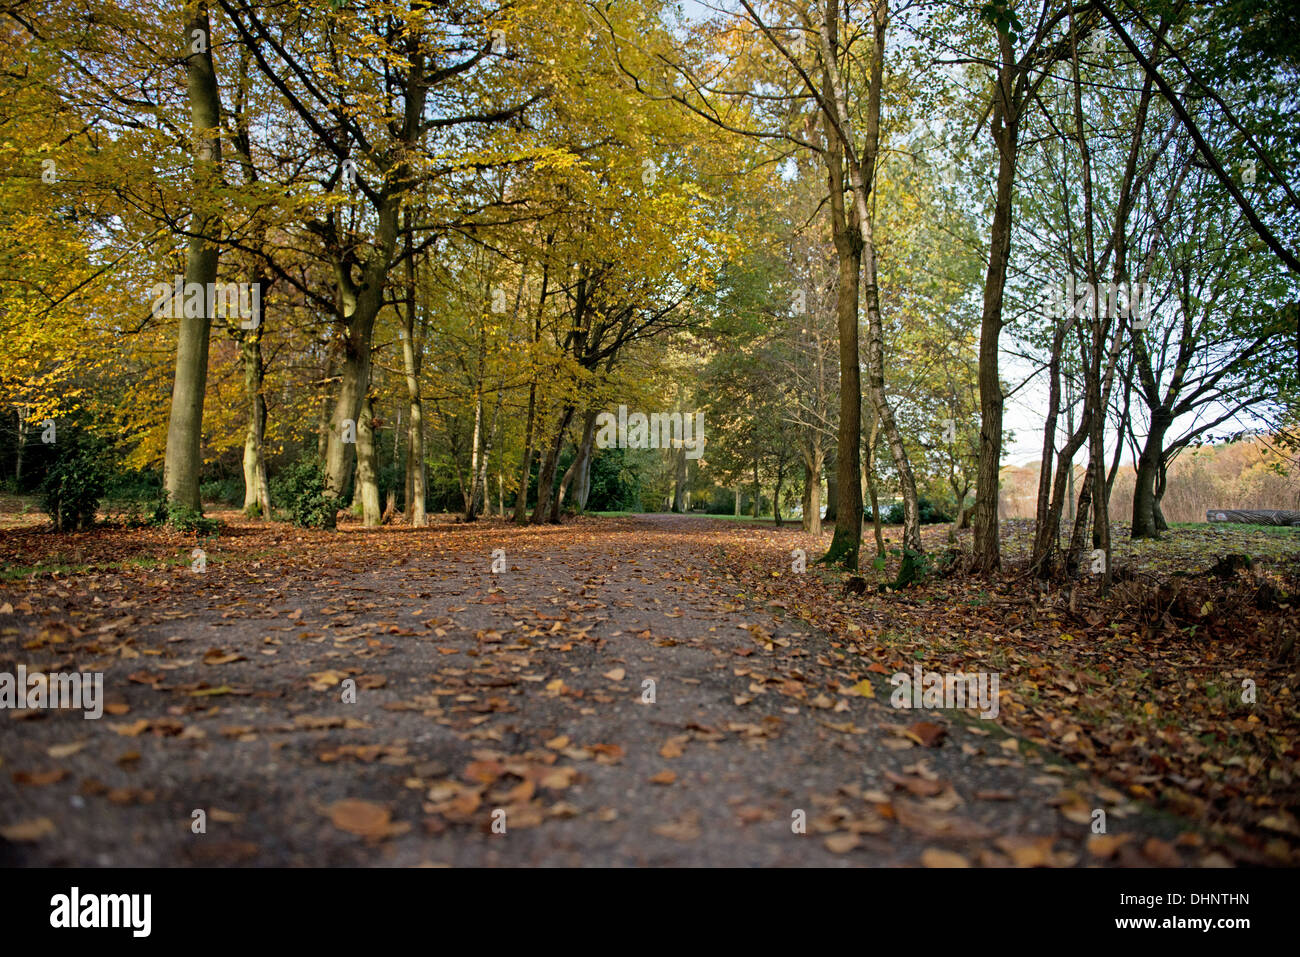 Tilgate Park, Crawley, West Sussex, England, Uk - Stock Image